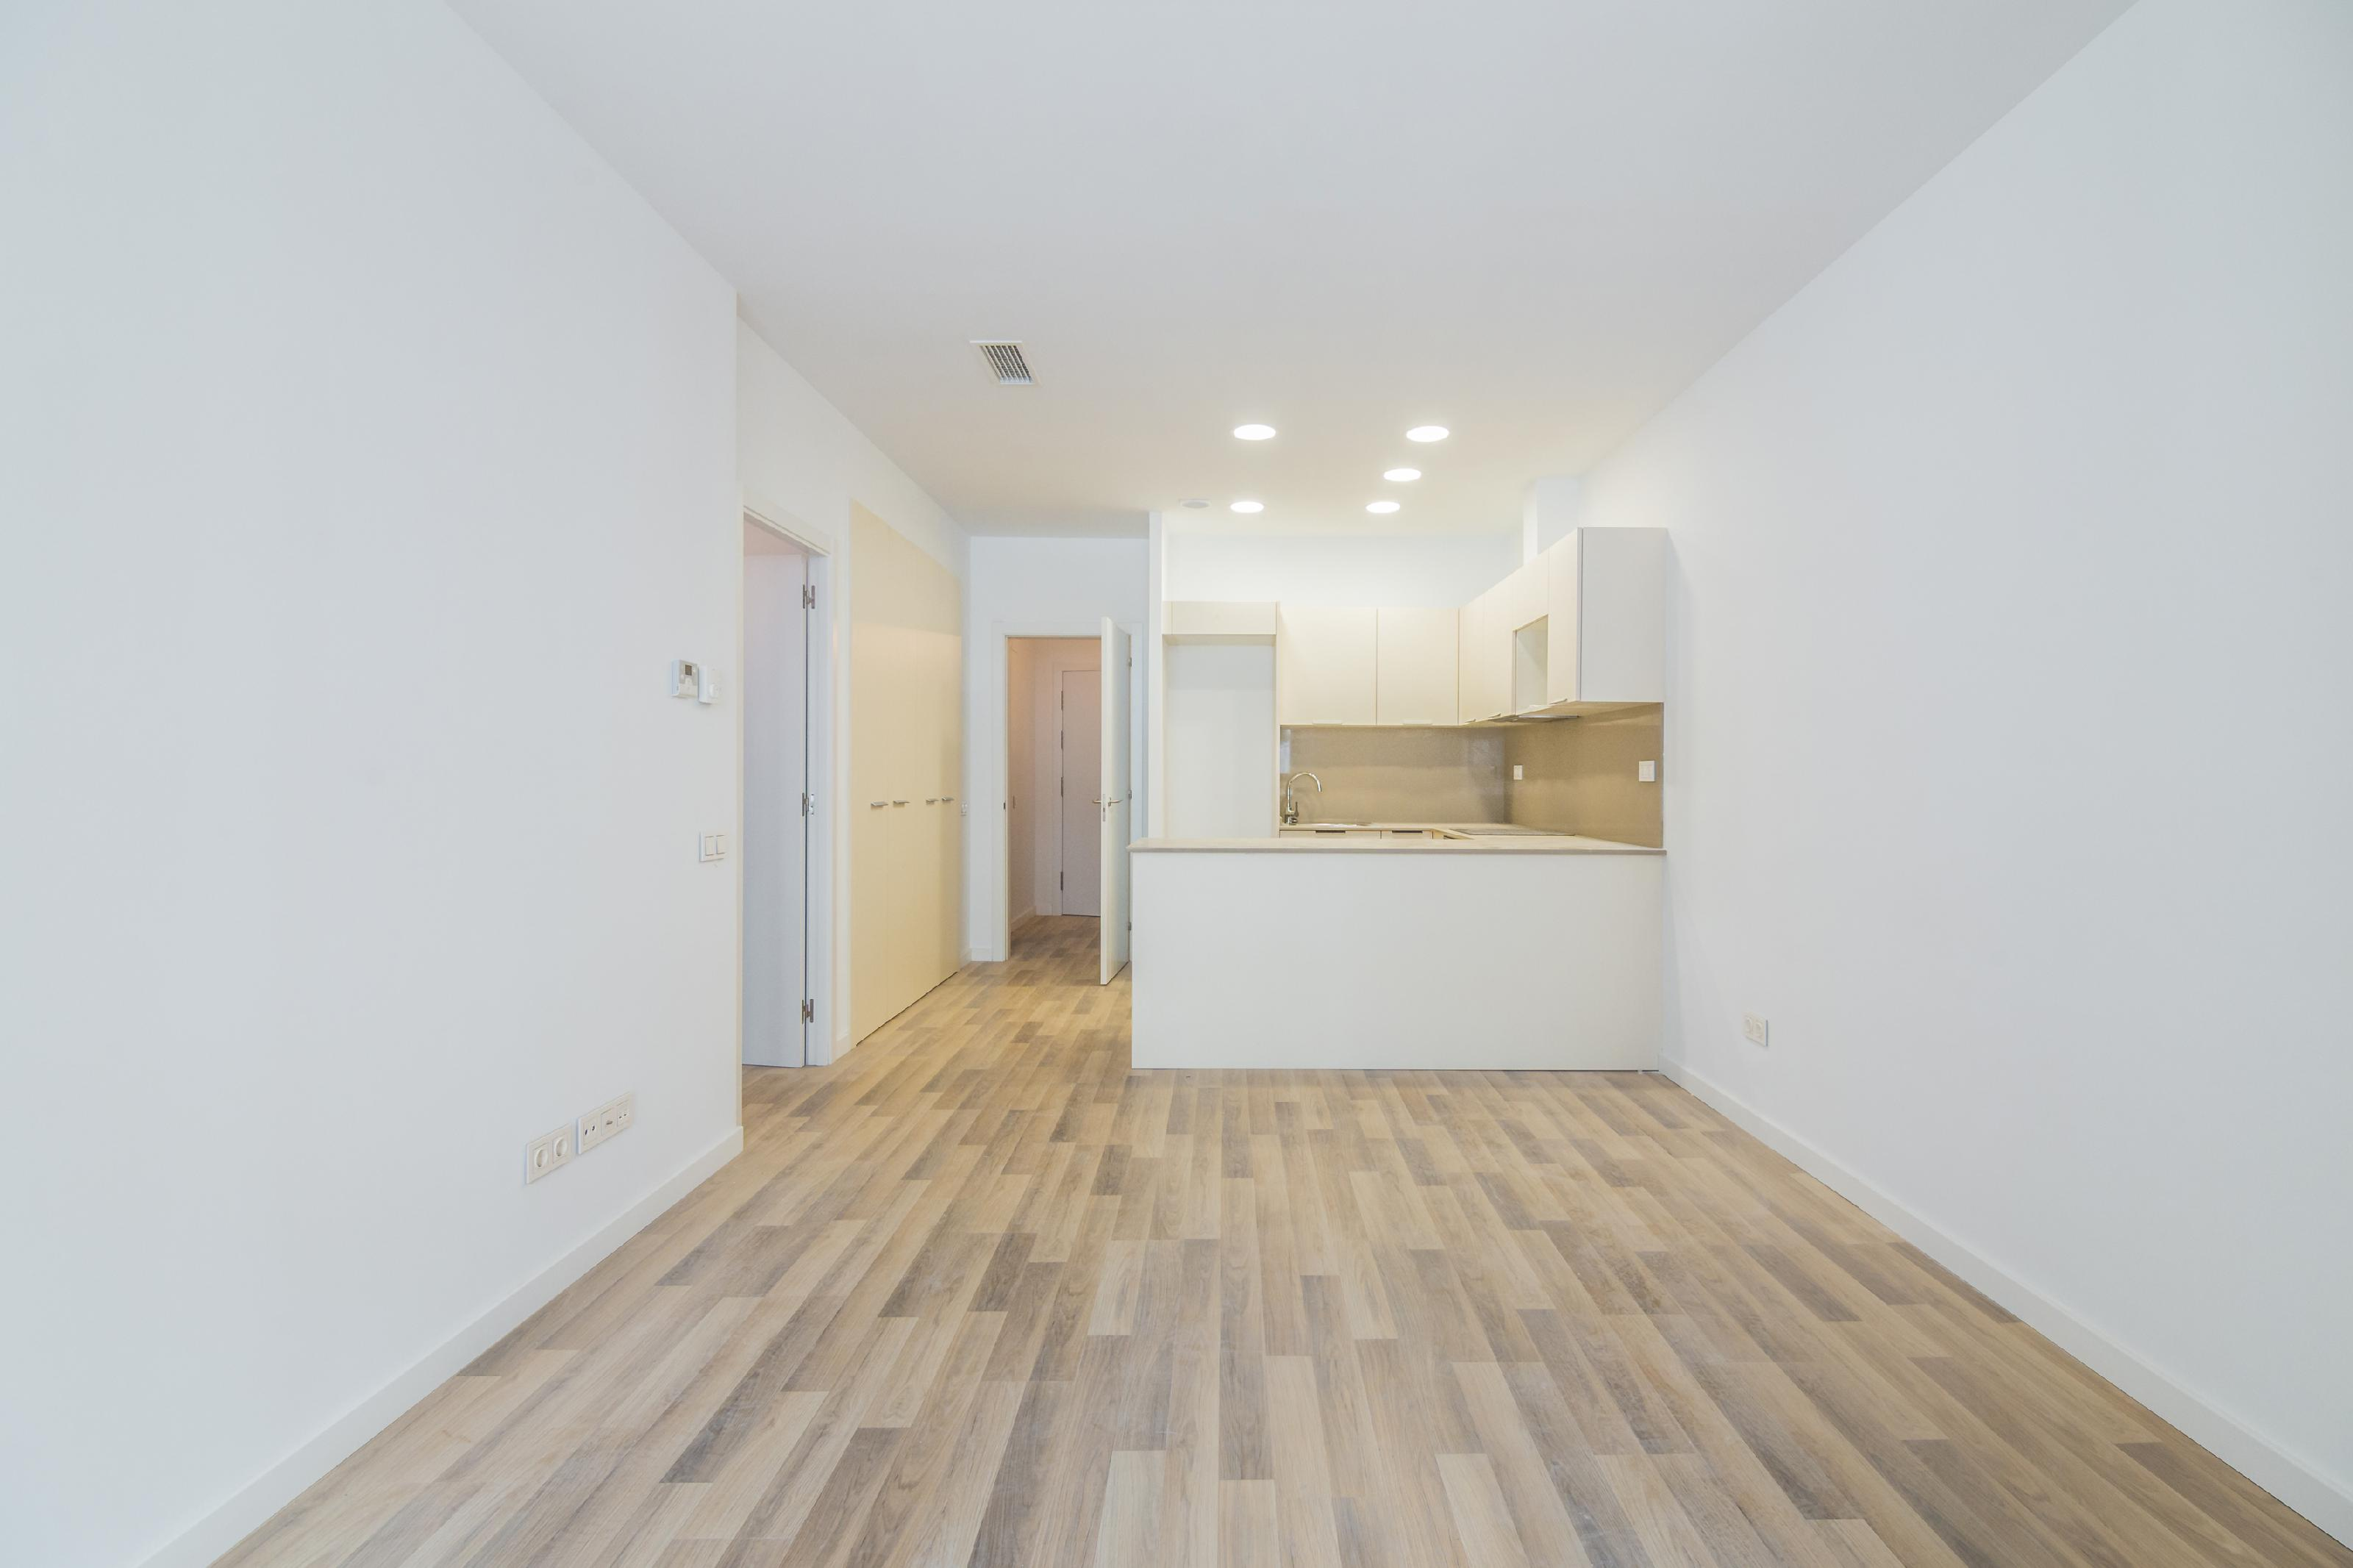 220650 Ground floor for sale in Sarrià-Sant Gervasi, Sant Gervasi-Galvany 19